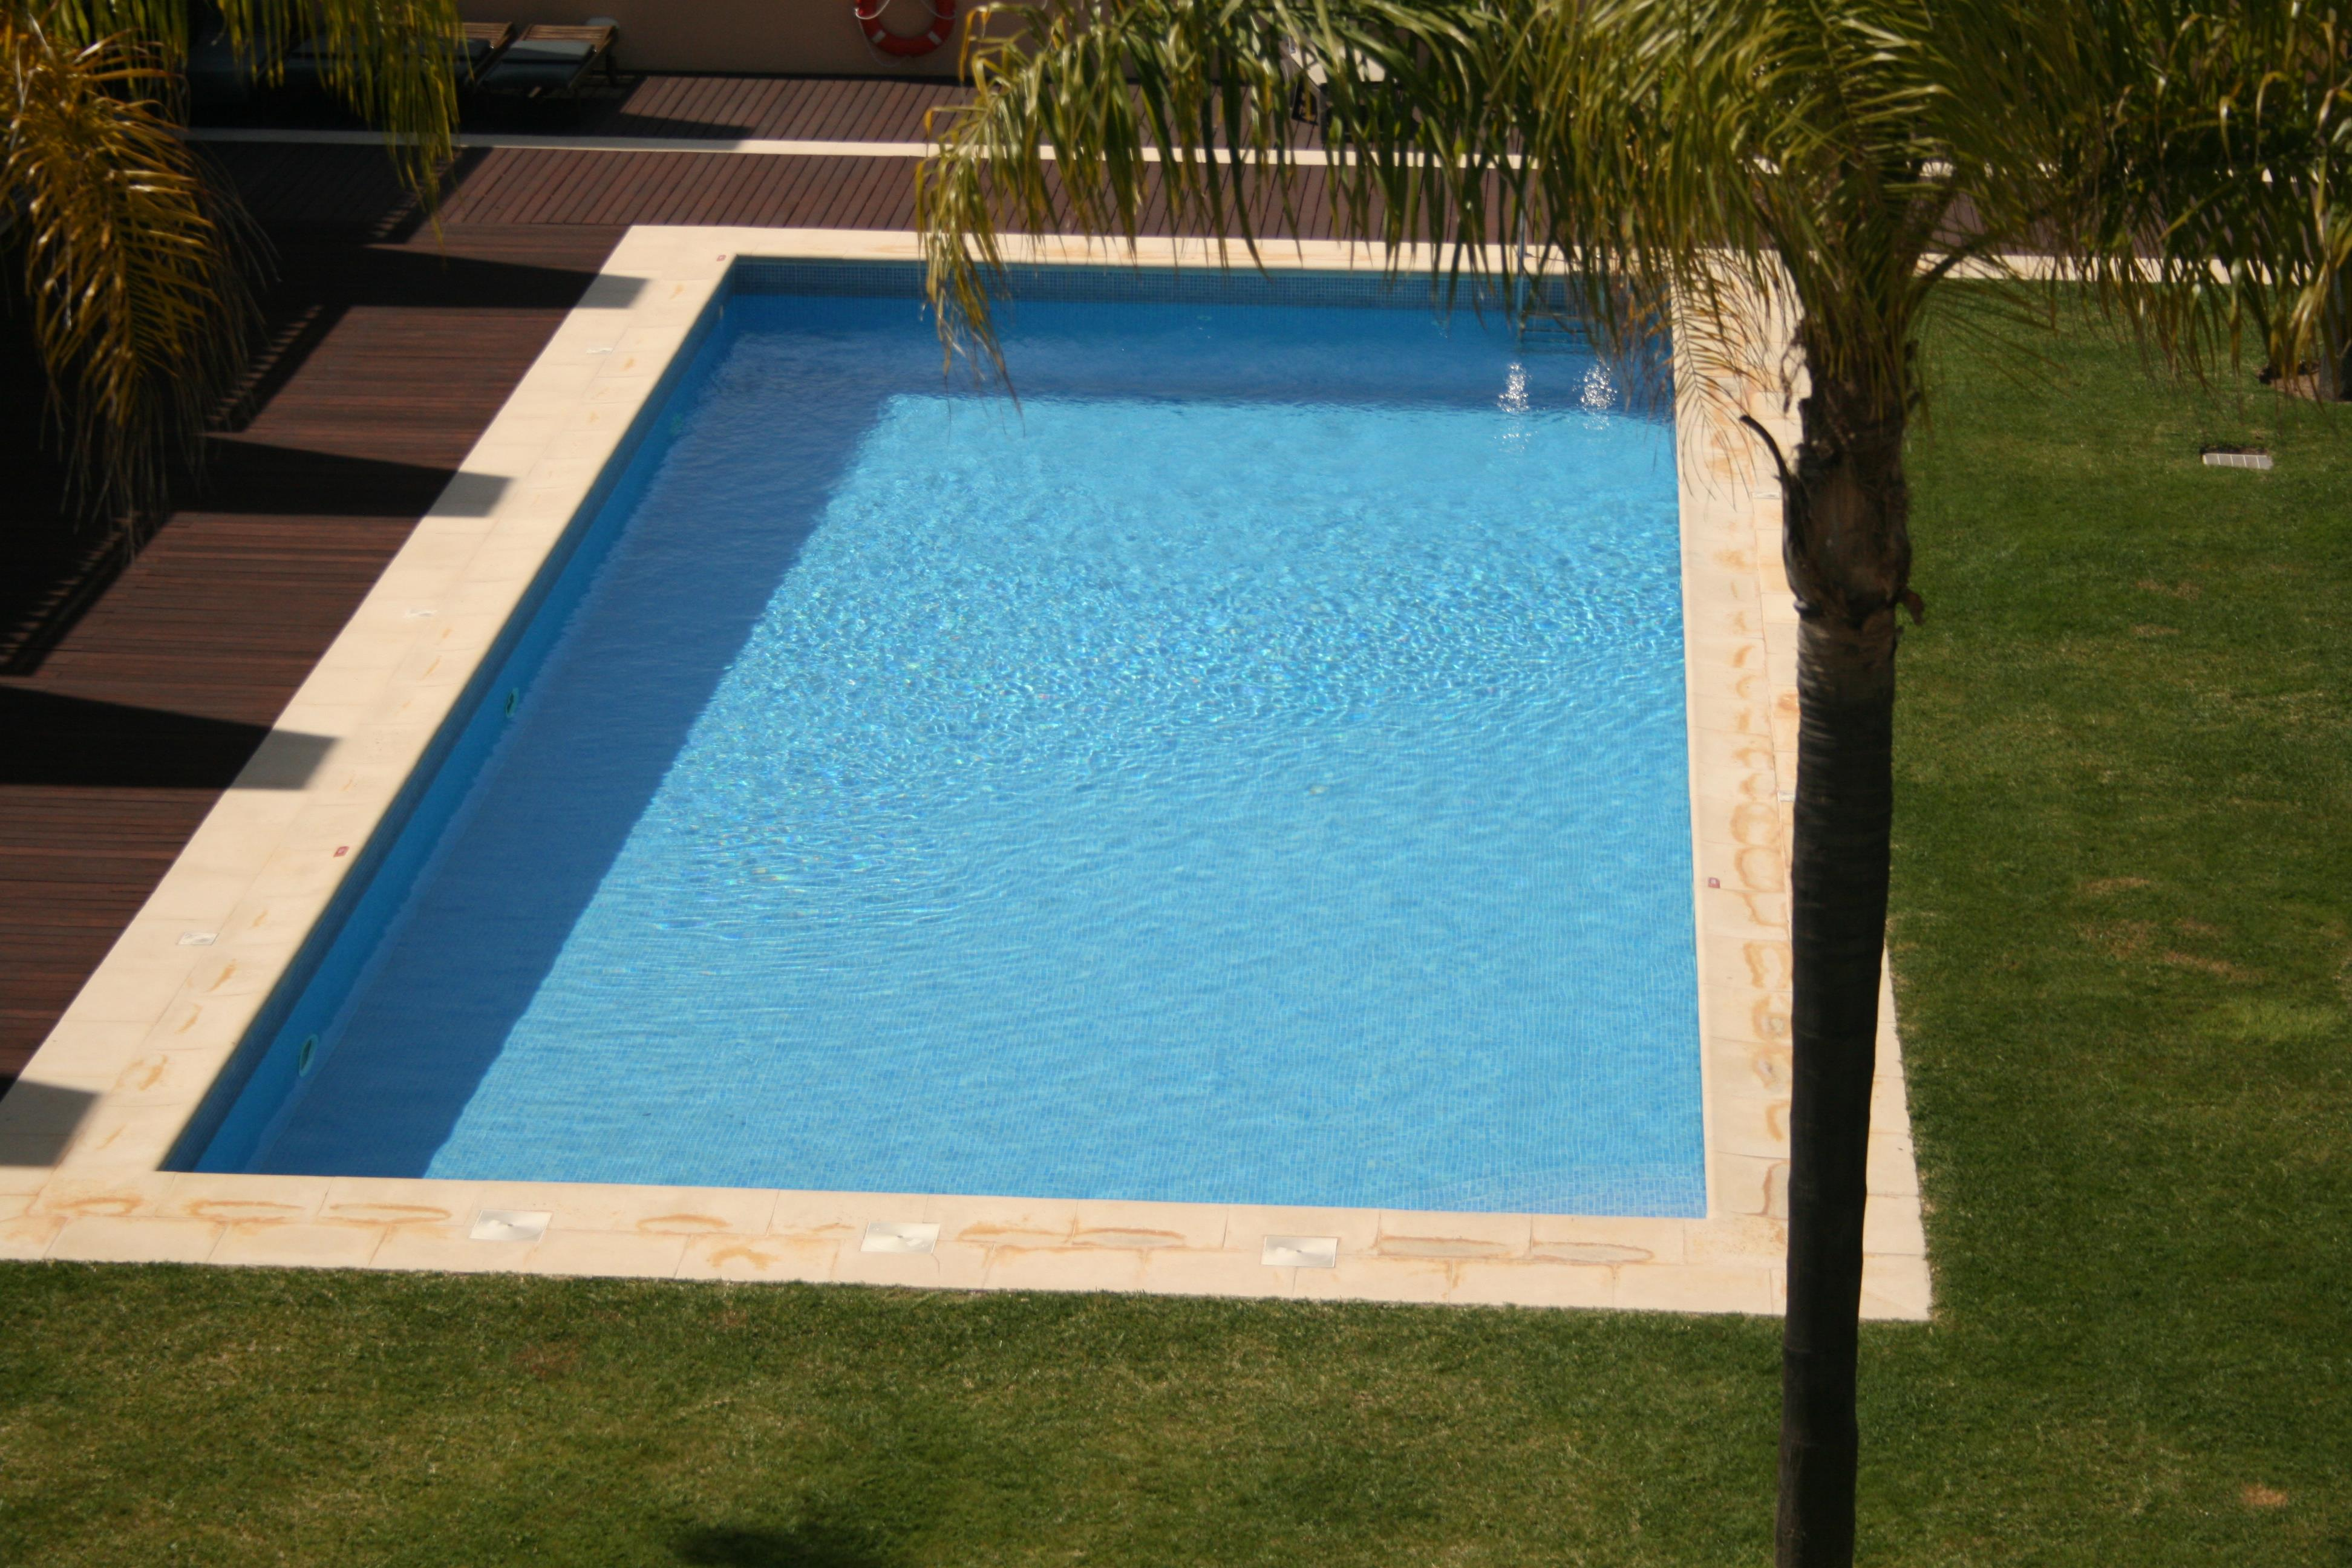 Apartment for Sale at Flat, 2 bedrooms, for Sale Loule, Algarve, 8125-406 Portugal